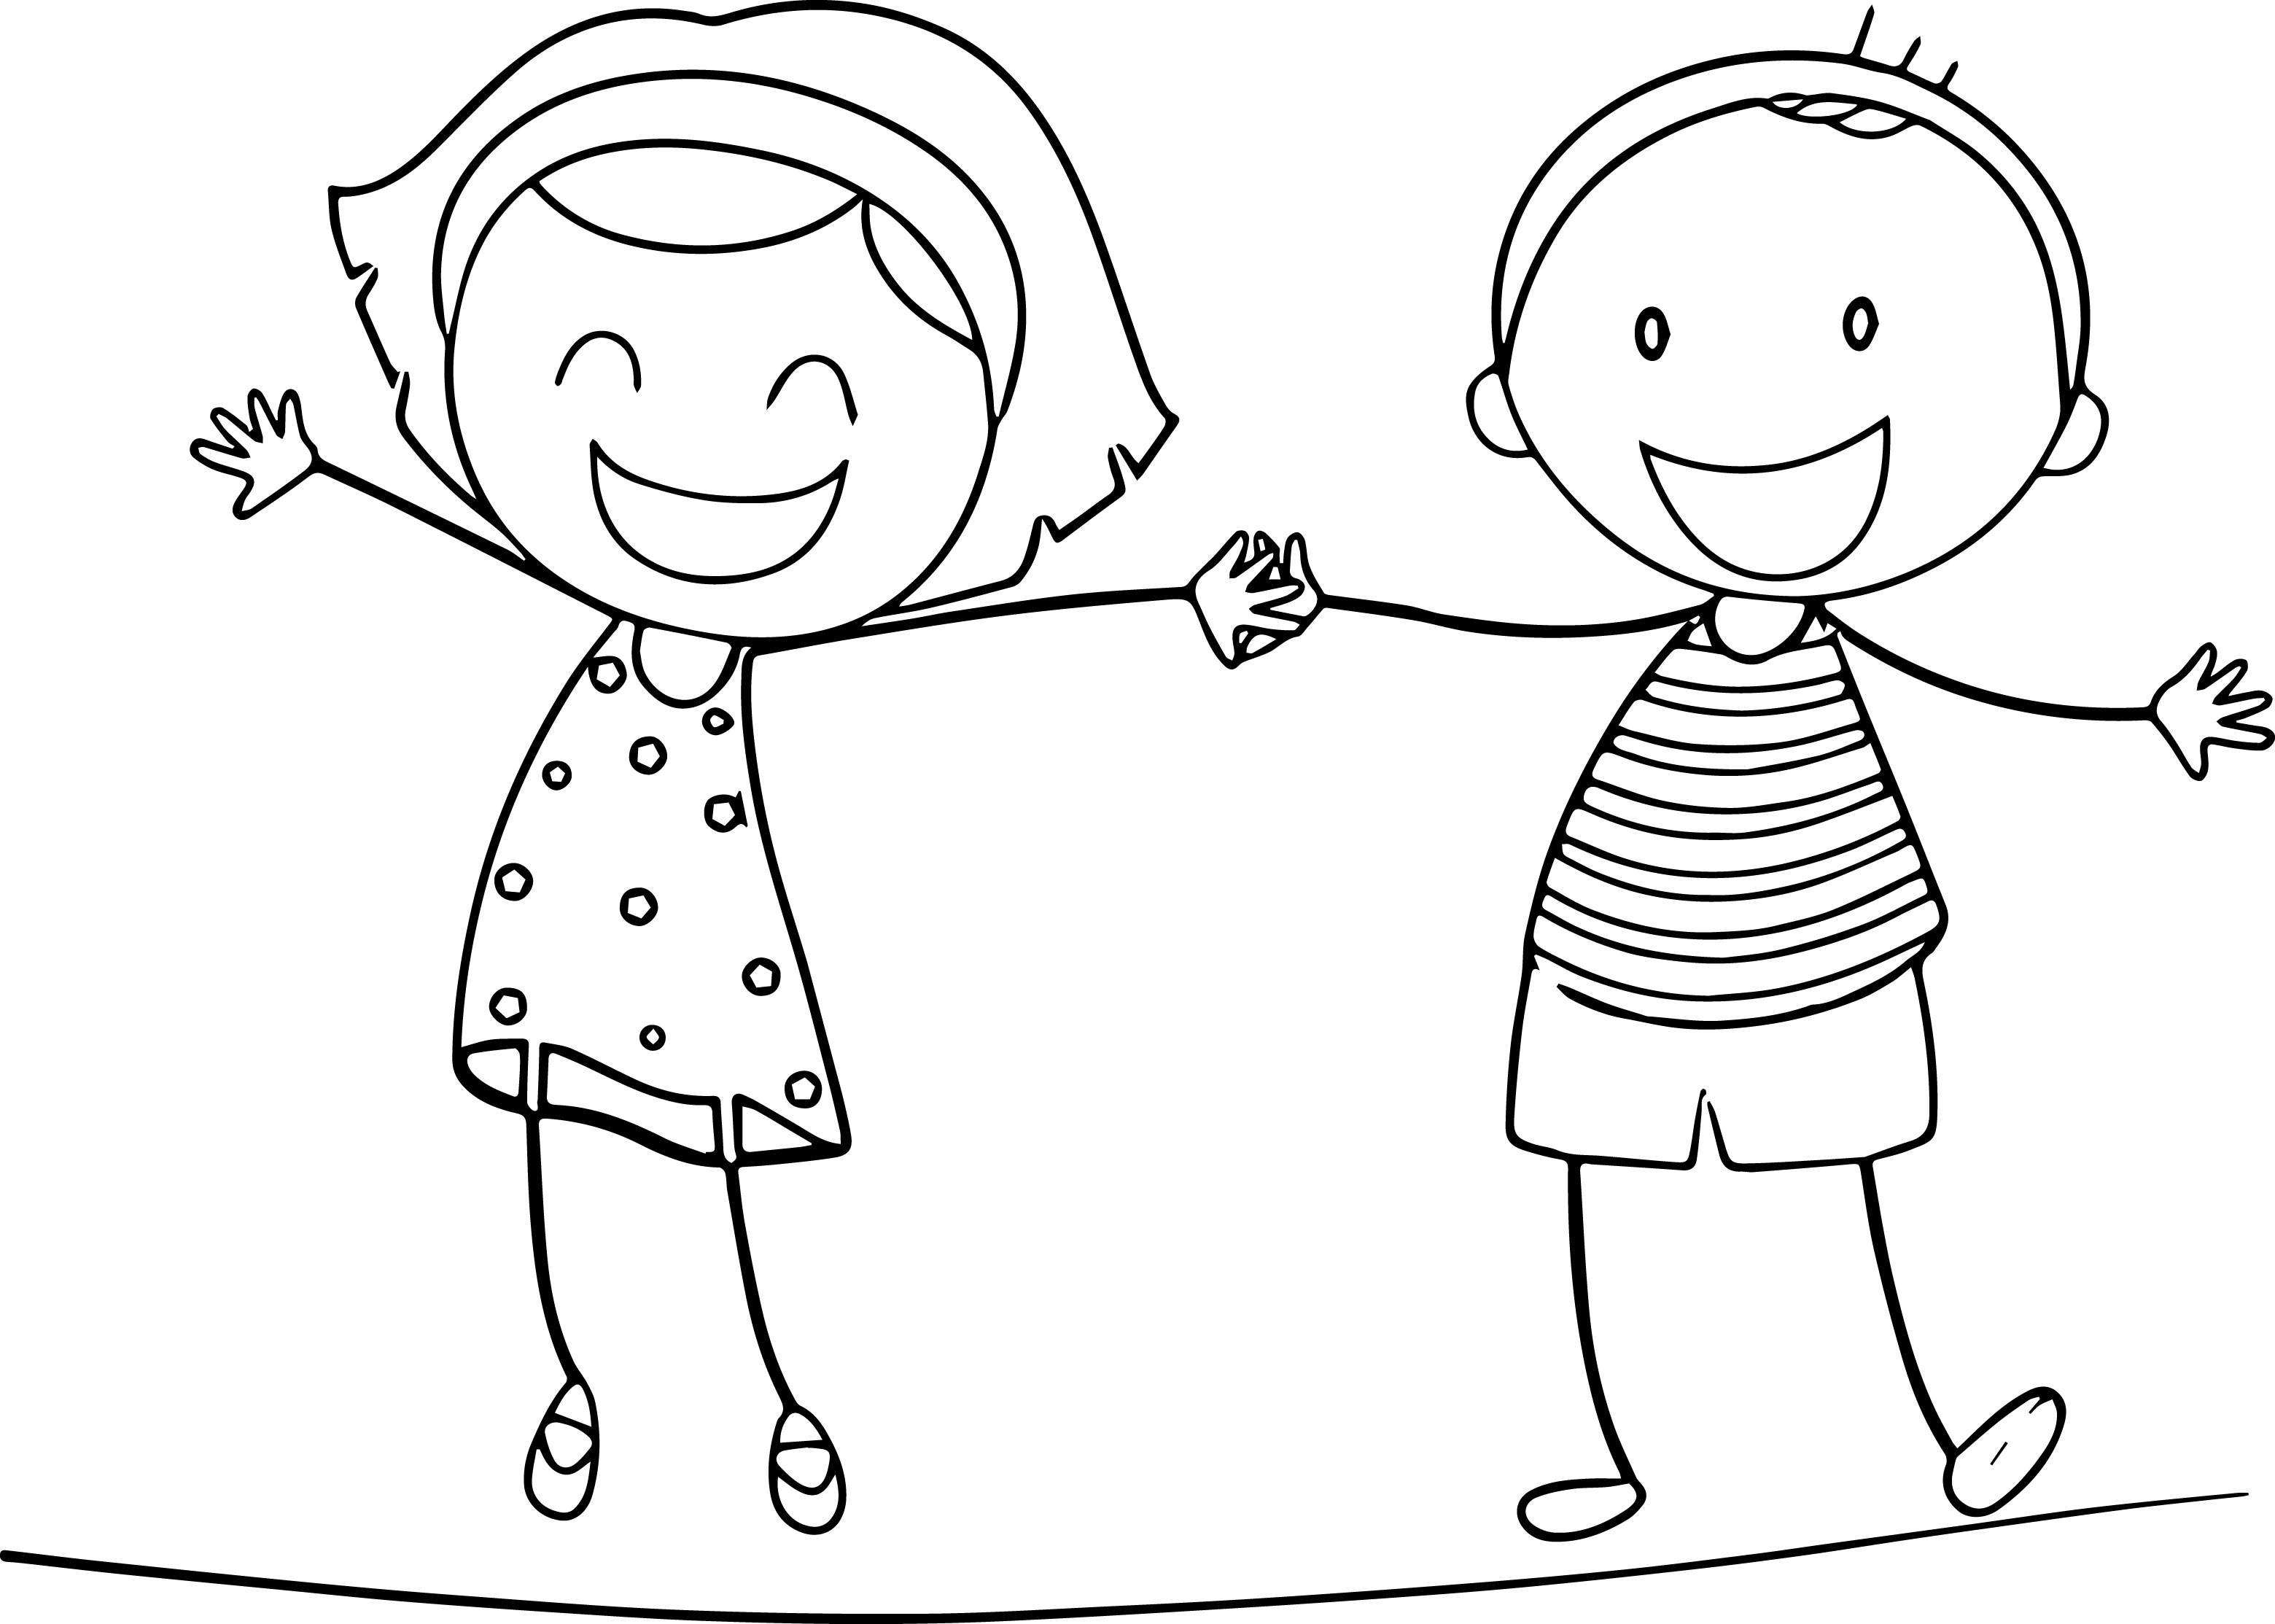 3120x2227 Free Coloring Pages Boy And Girl Preschool In Fancy Draw Image Fun